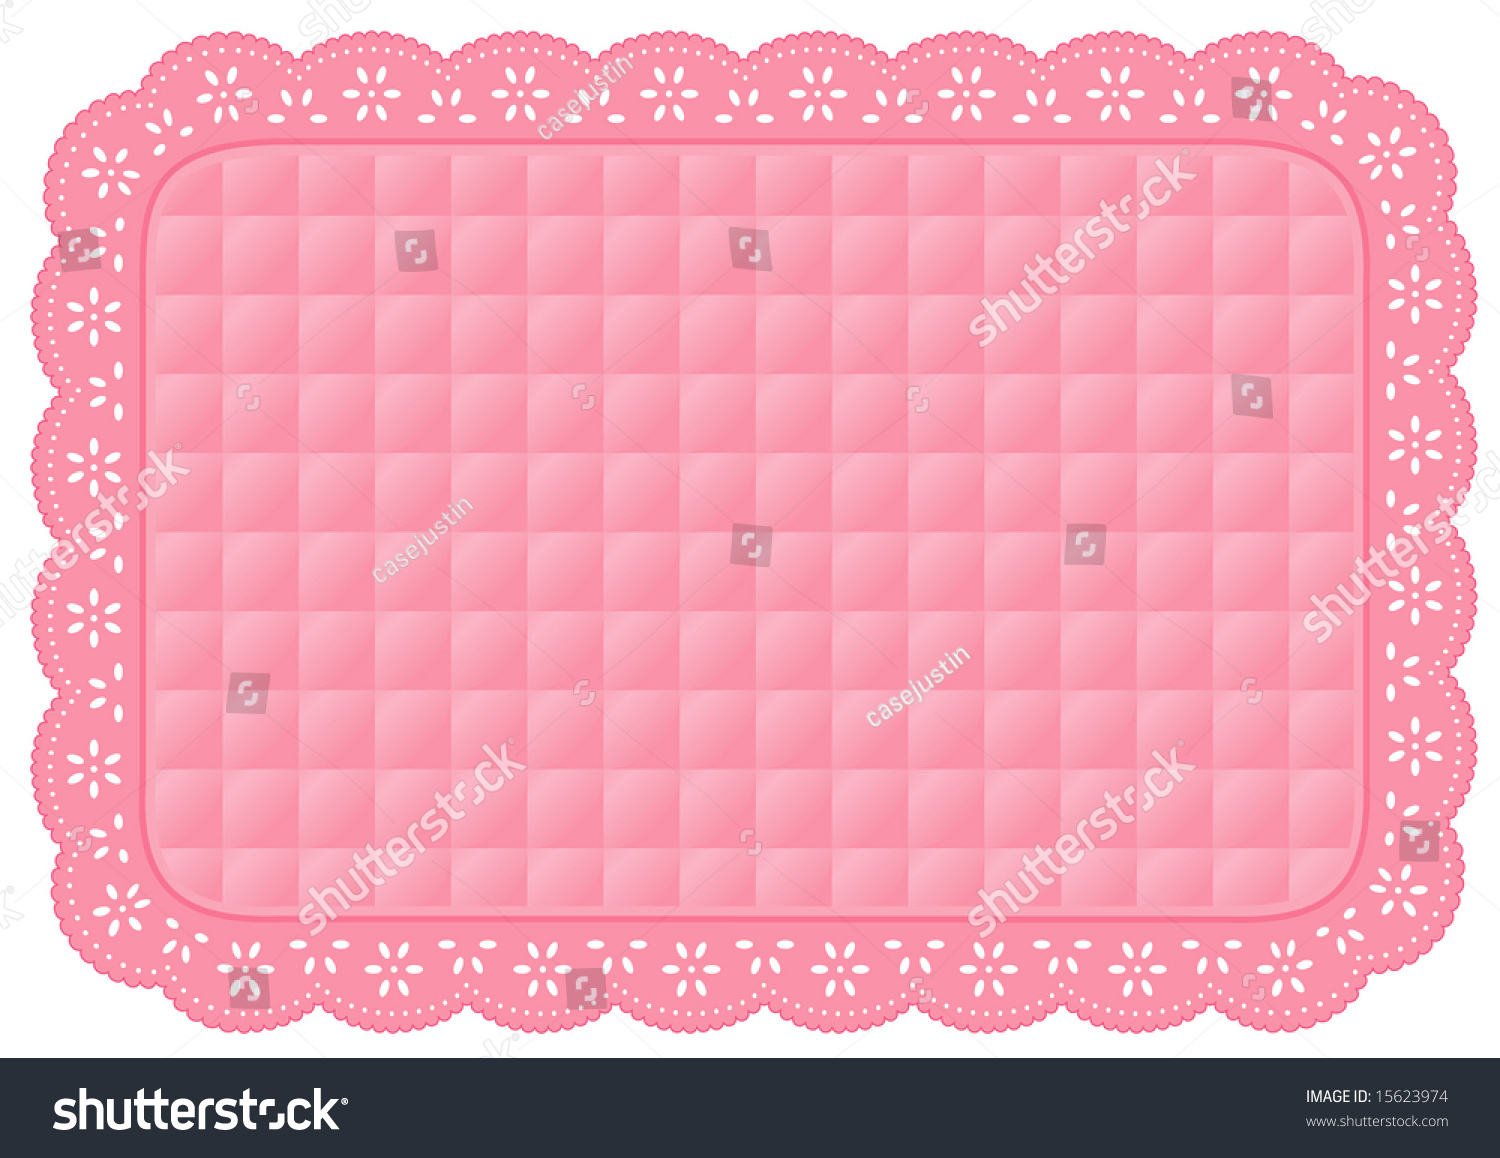 Place mat quilted eyelet lace doily pastel pink background and border for table setting home - Pastel lace wallpaper ...